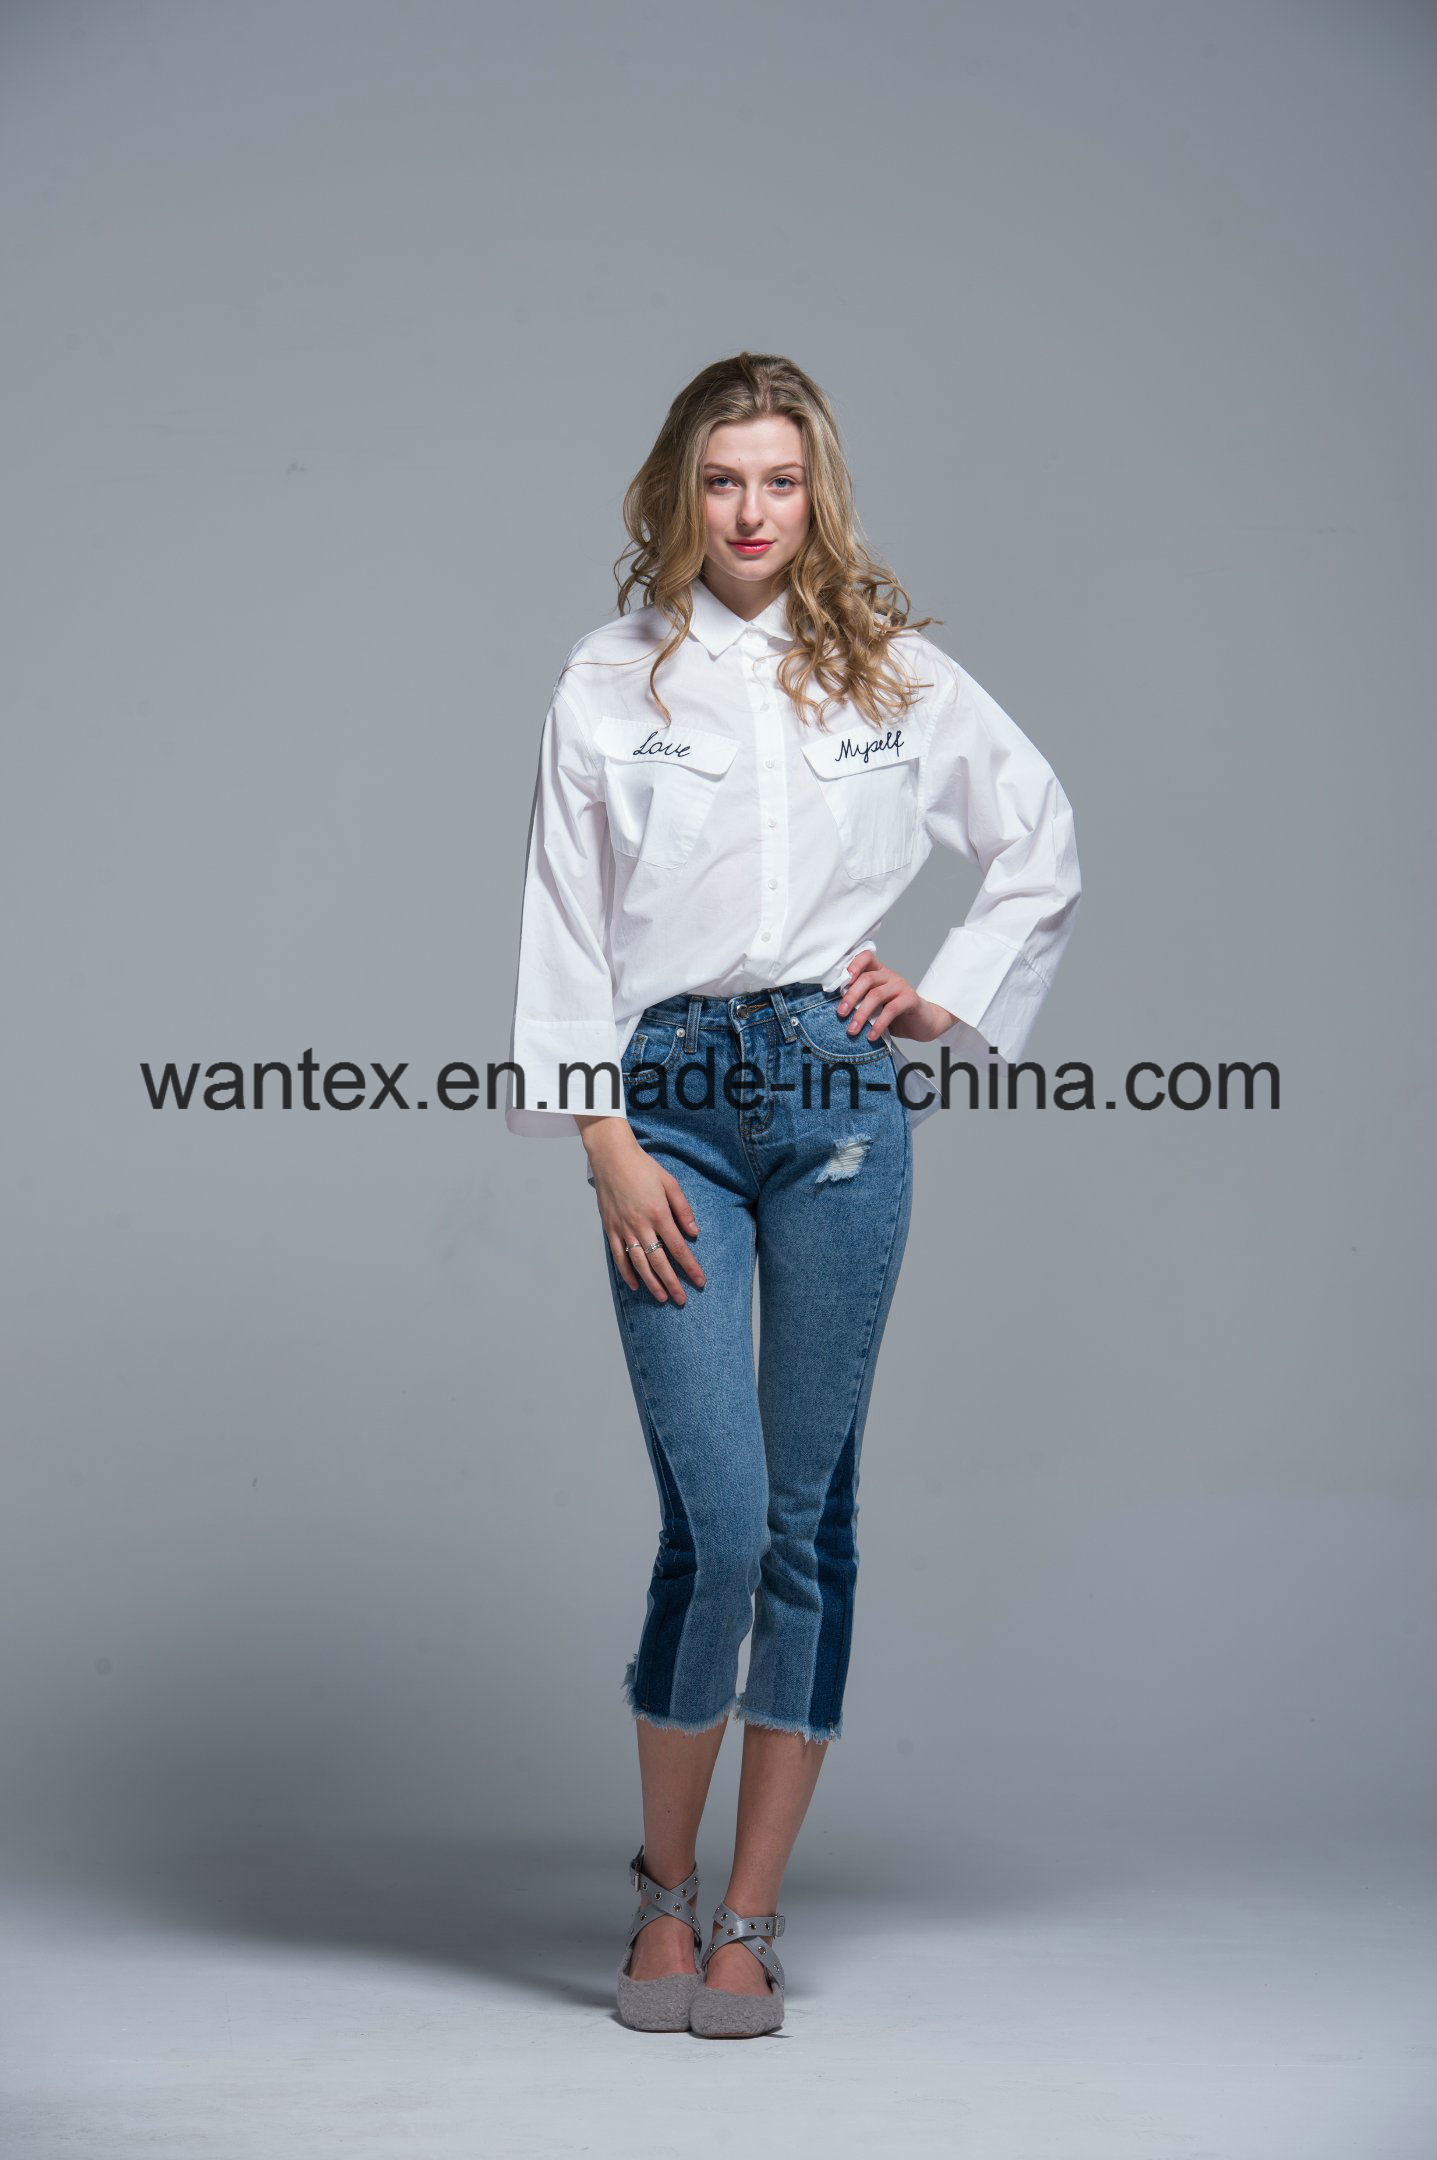 Ladies Blouse 100% Cotton Fashion Shirt Fashion Top Spring Autumn